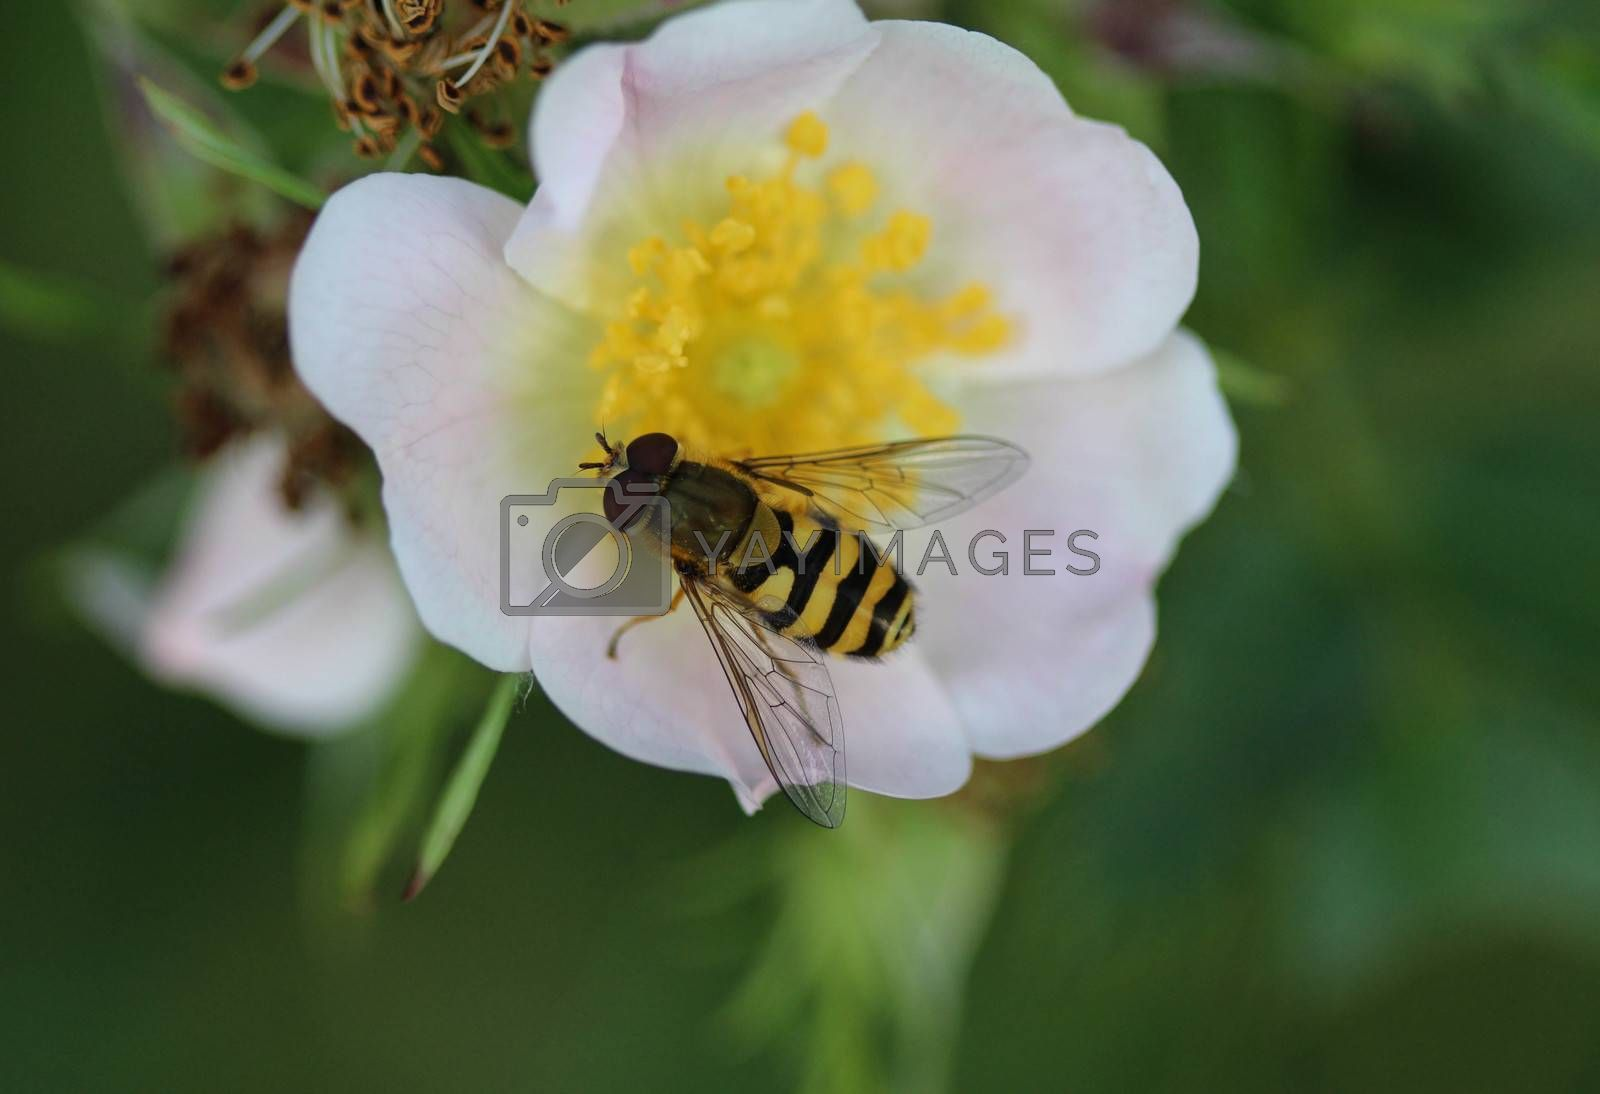 Royalty free image of Syrphus ribesii, a very common European species of hoverfly, sitting on a flower by michaelmeijer